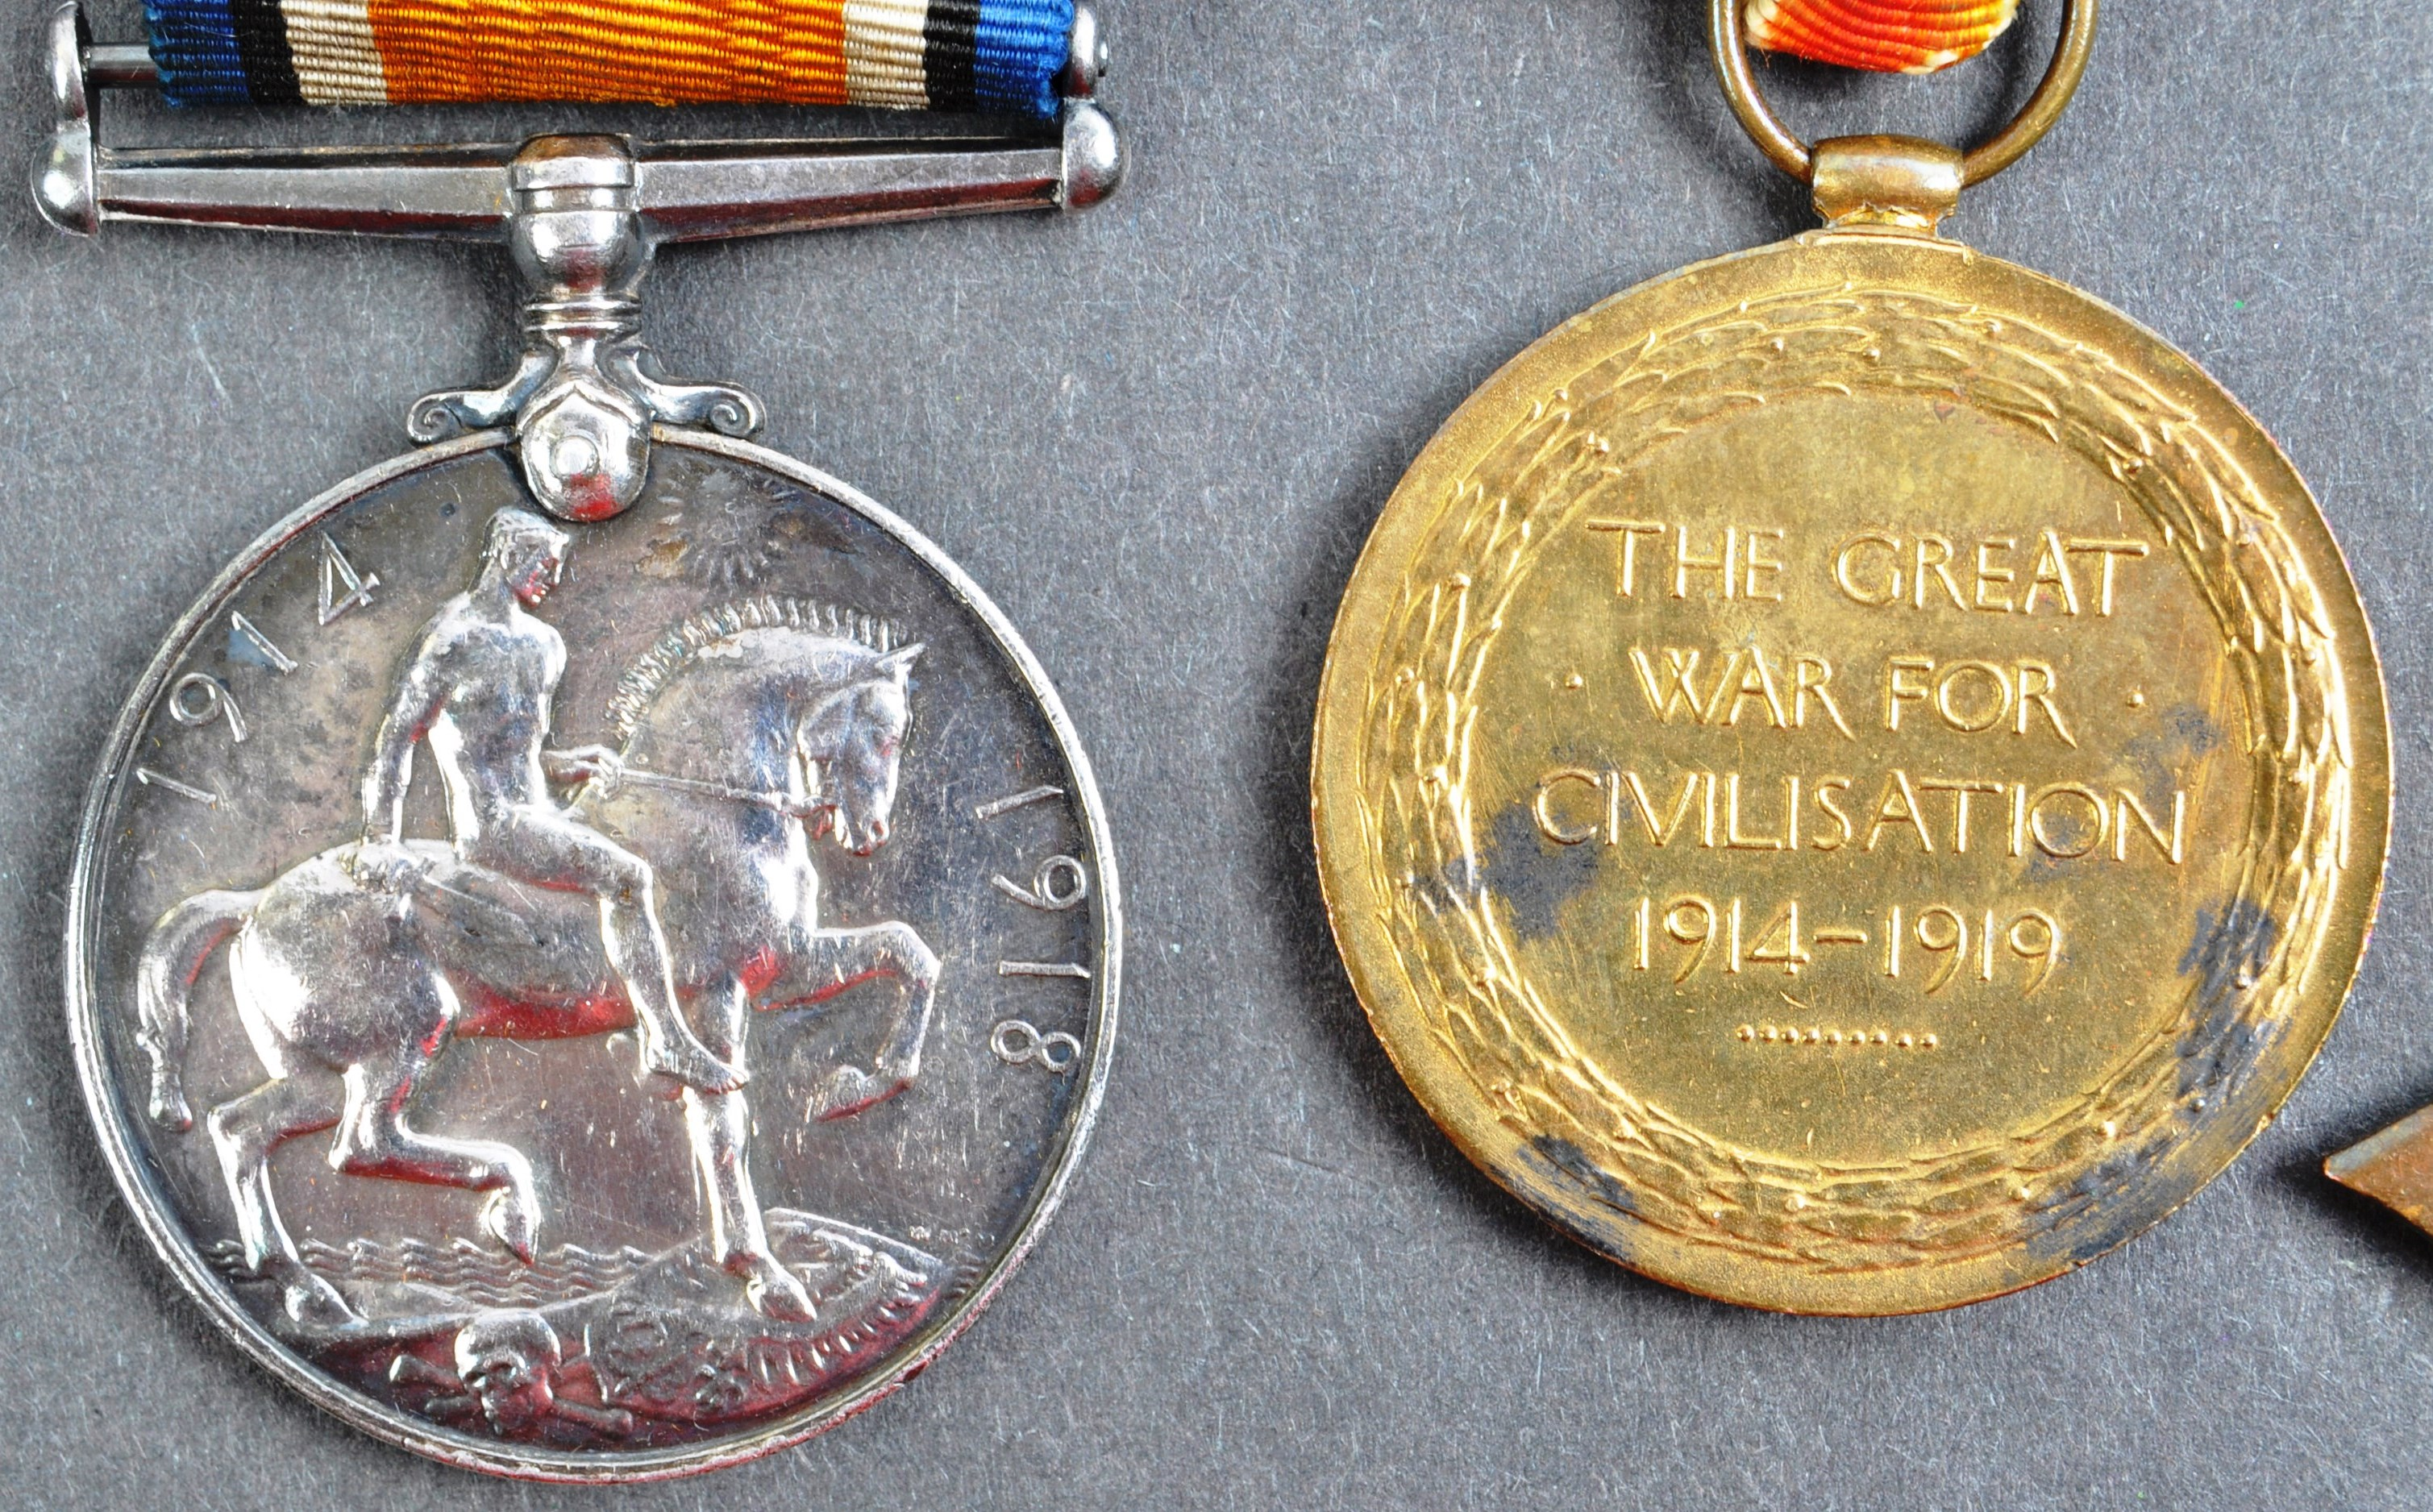 WWI FIRST WORLD WAR MEDAL GROUP - LEADING SEAMAN ROYAL NAVY - Image 5 of 10